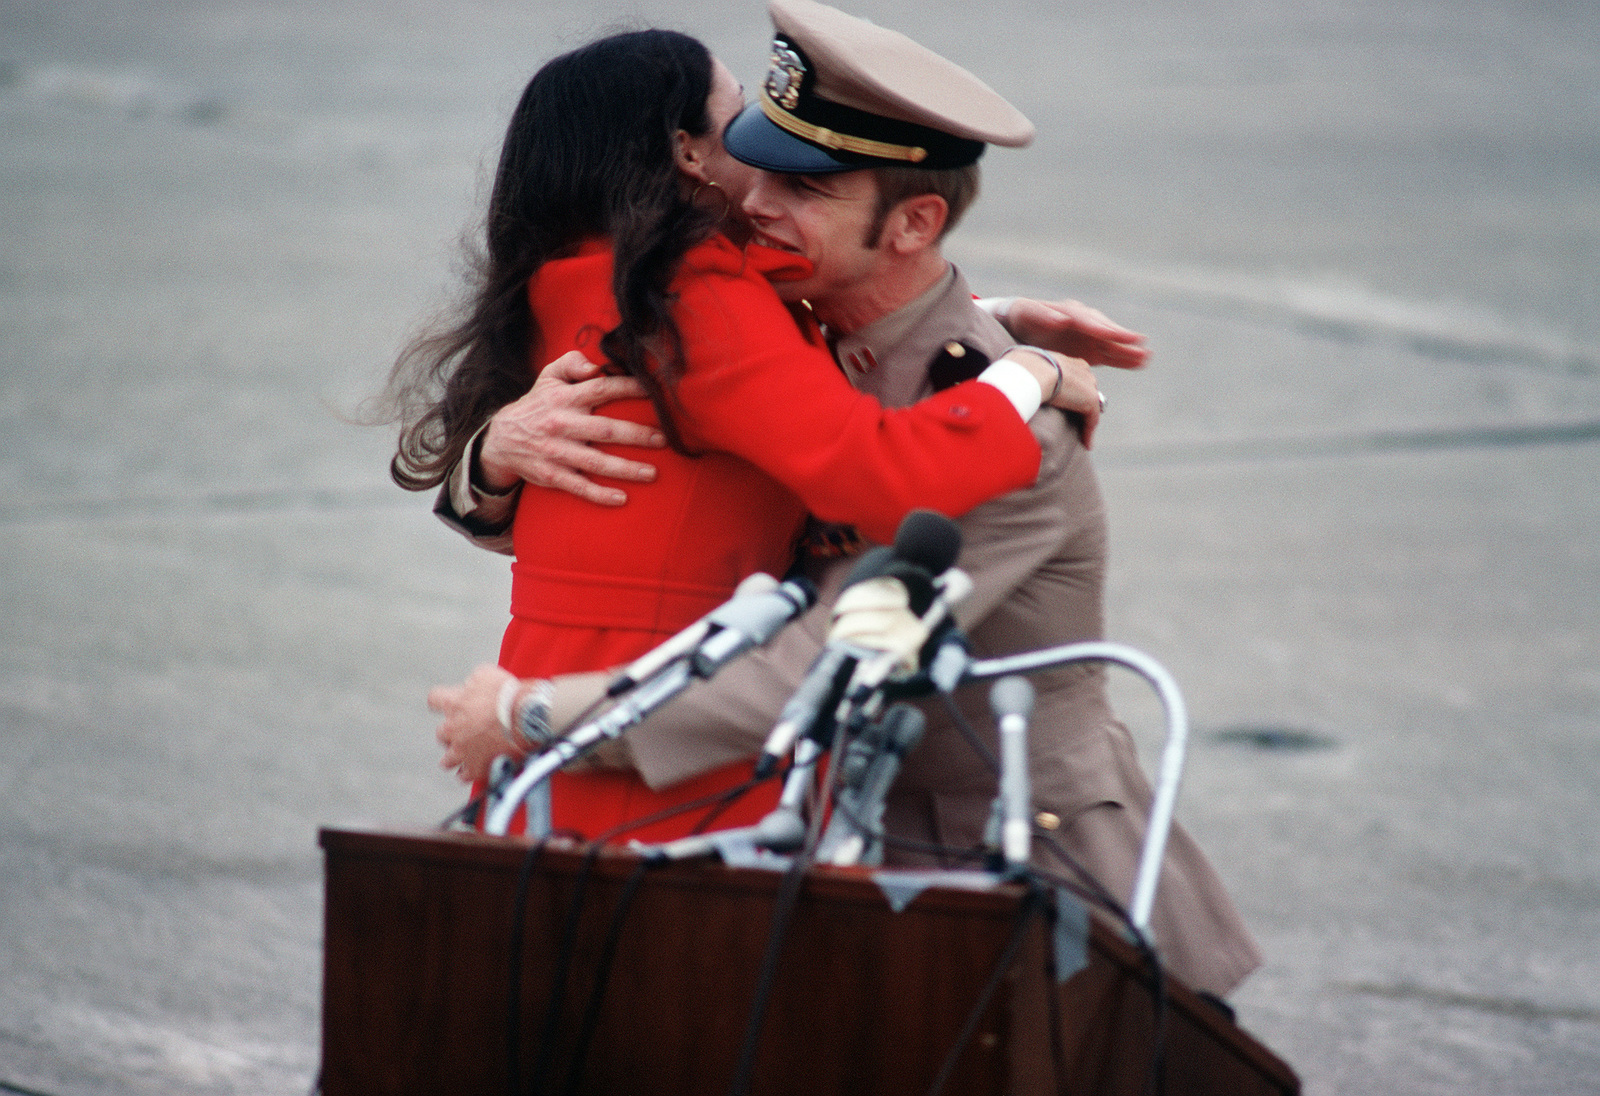 Former POW and U.S. Navy LT Kenneth H. Higdon is greeted by a loved one on the ramp. LT Higdon was captured on 21 Dec 72 and released by the North Vietnamese in Hanoi 12 Feb 73